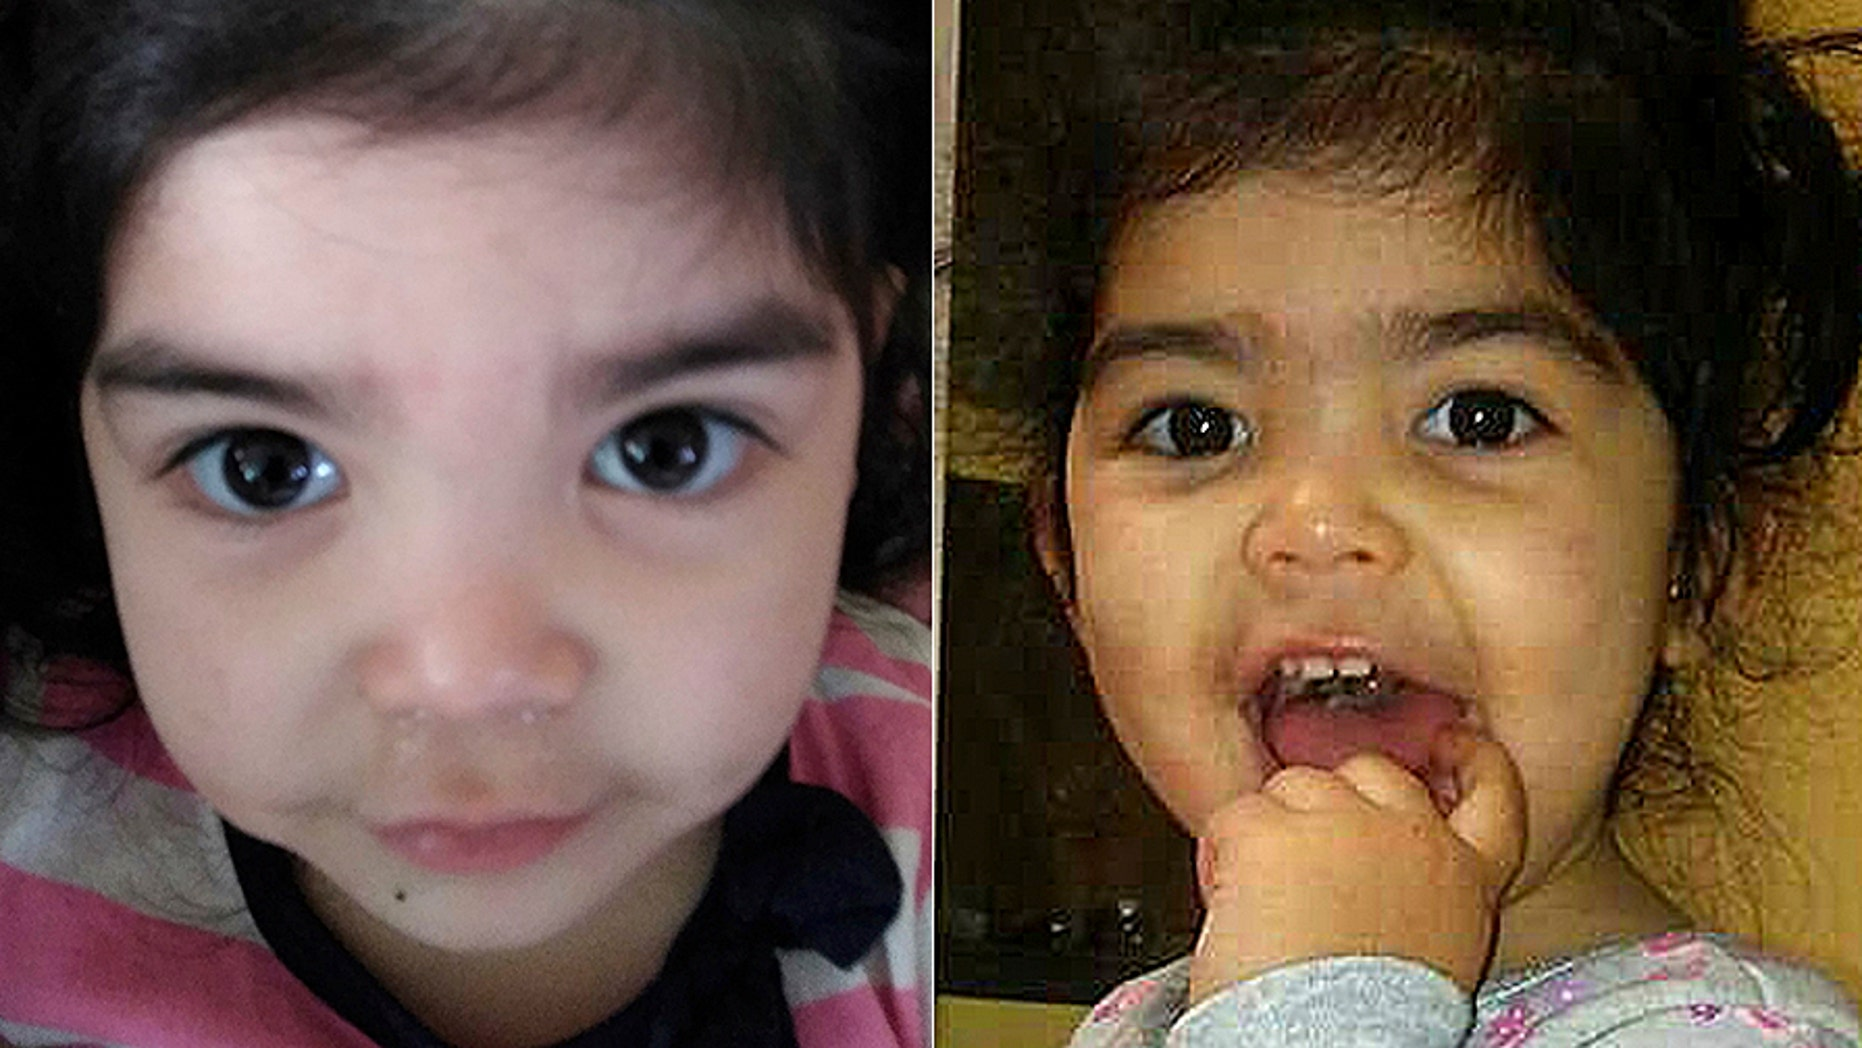 """I [went to] pick up my daughter yesterday and saw a red mark in between her eyebrows,"" Alyssa Salgado said on Facebook."